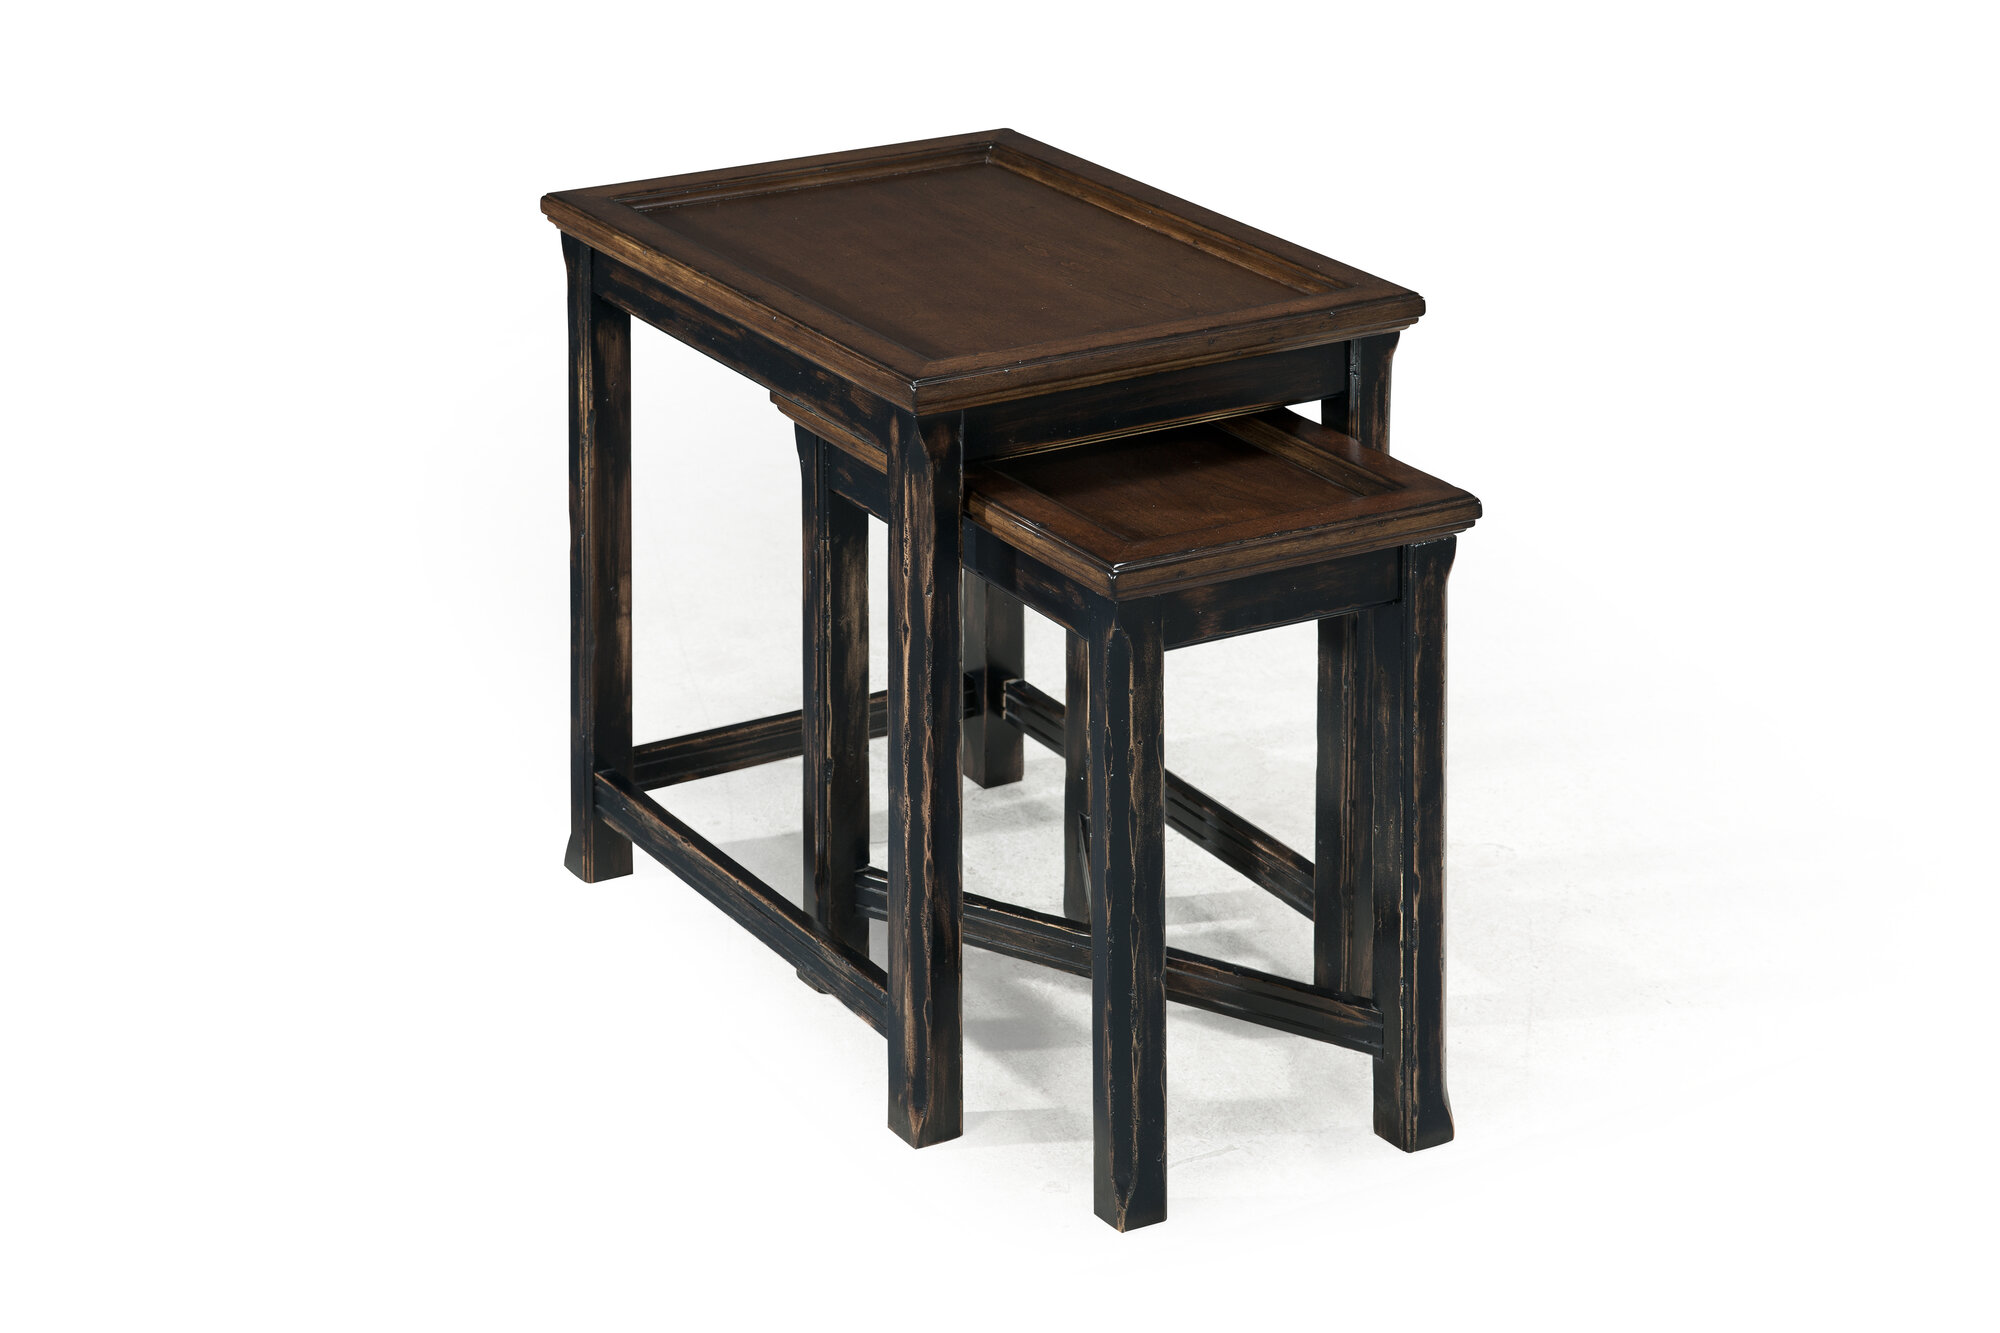 Amazing photo of Magnussen Furniture Clanton 2 Piece Nesting Tables eBay with #5E4938 color and 2000x1333 pixels